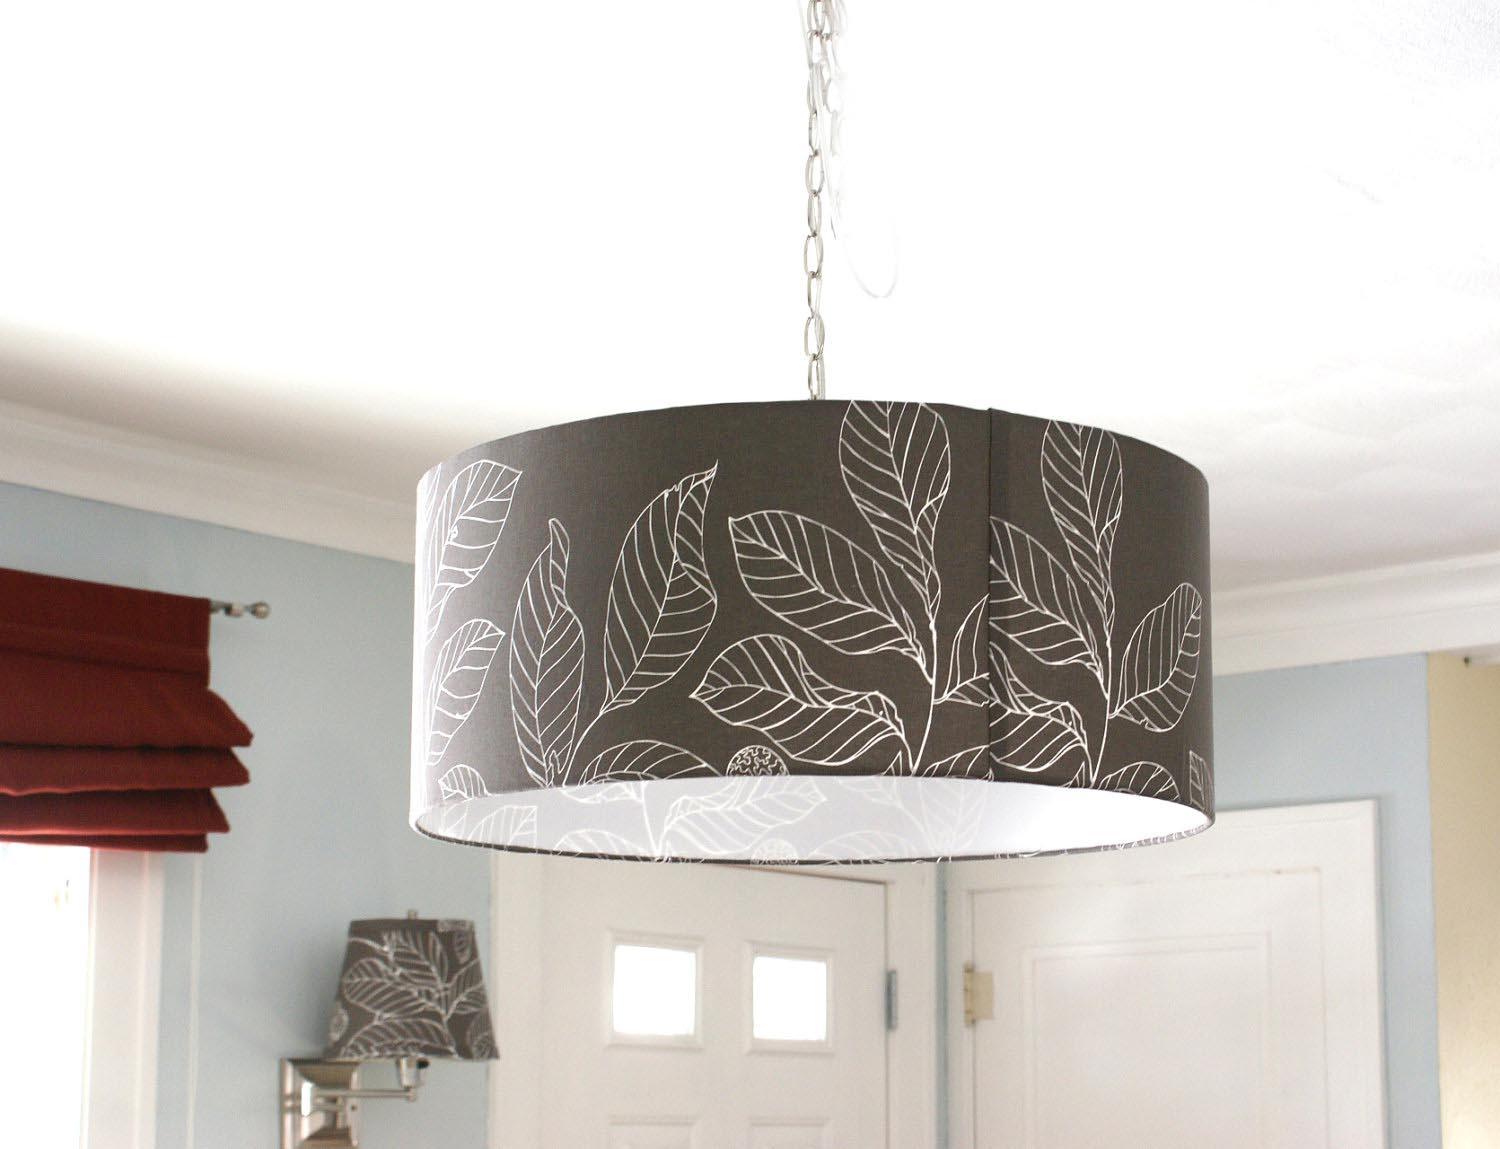 Drum Light Fixture with Crystals